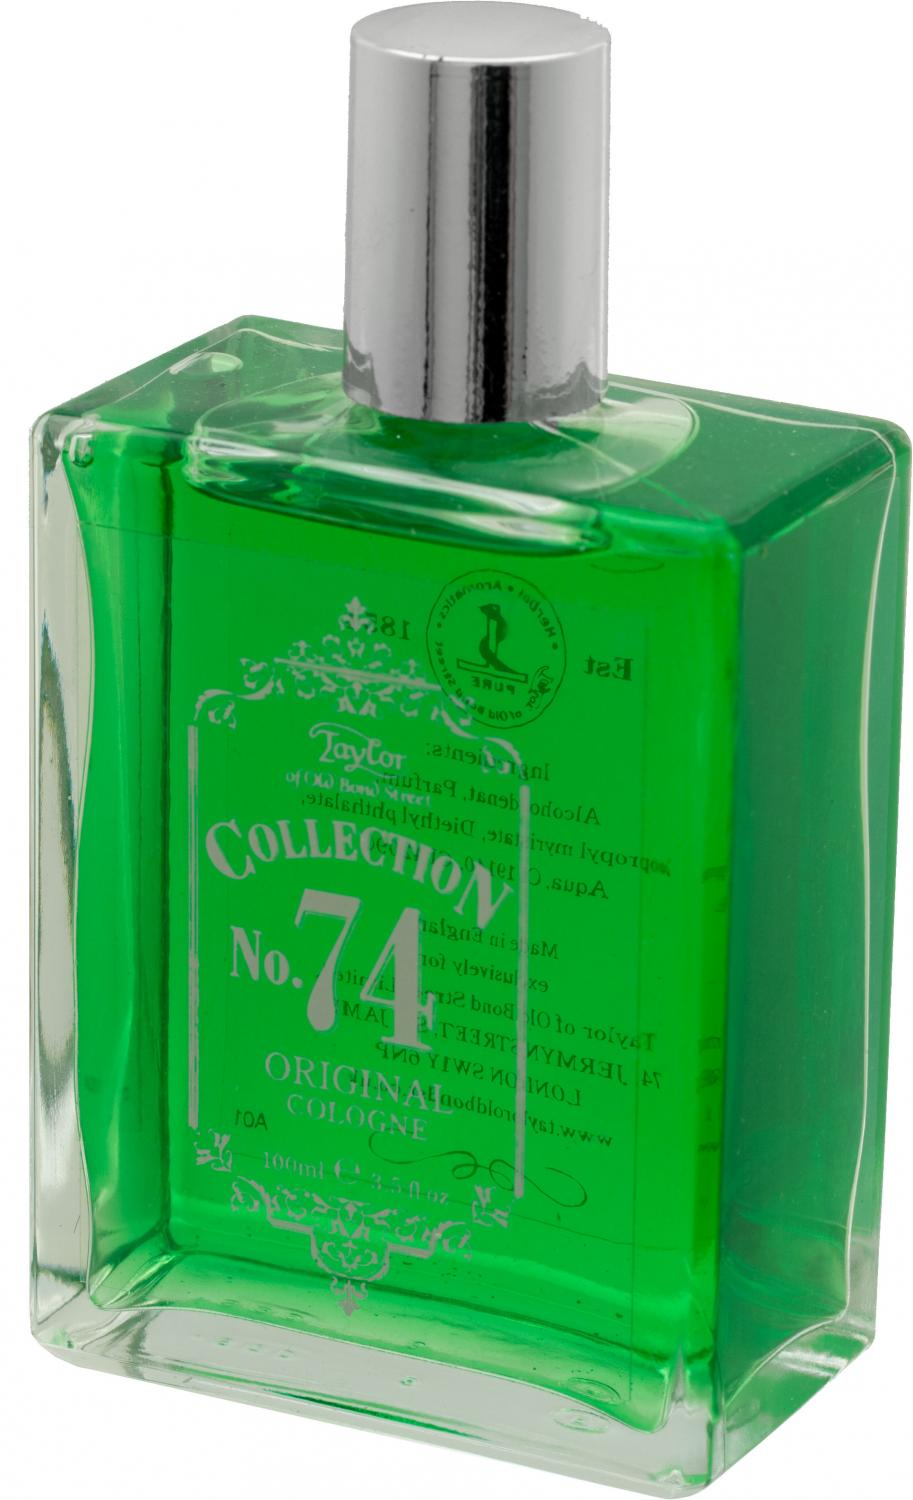 Taylor of Old Bond Street Collection No. 74 Traditional Cologne 3.5 oz (100ml)